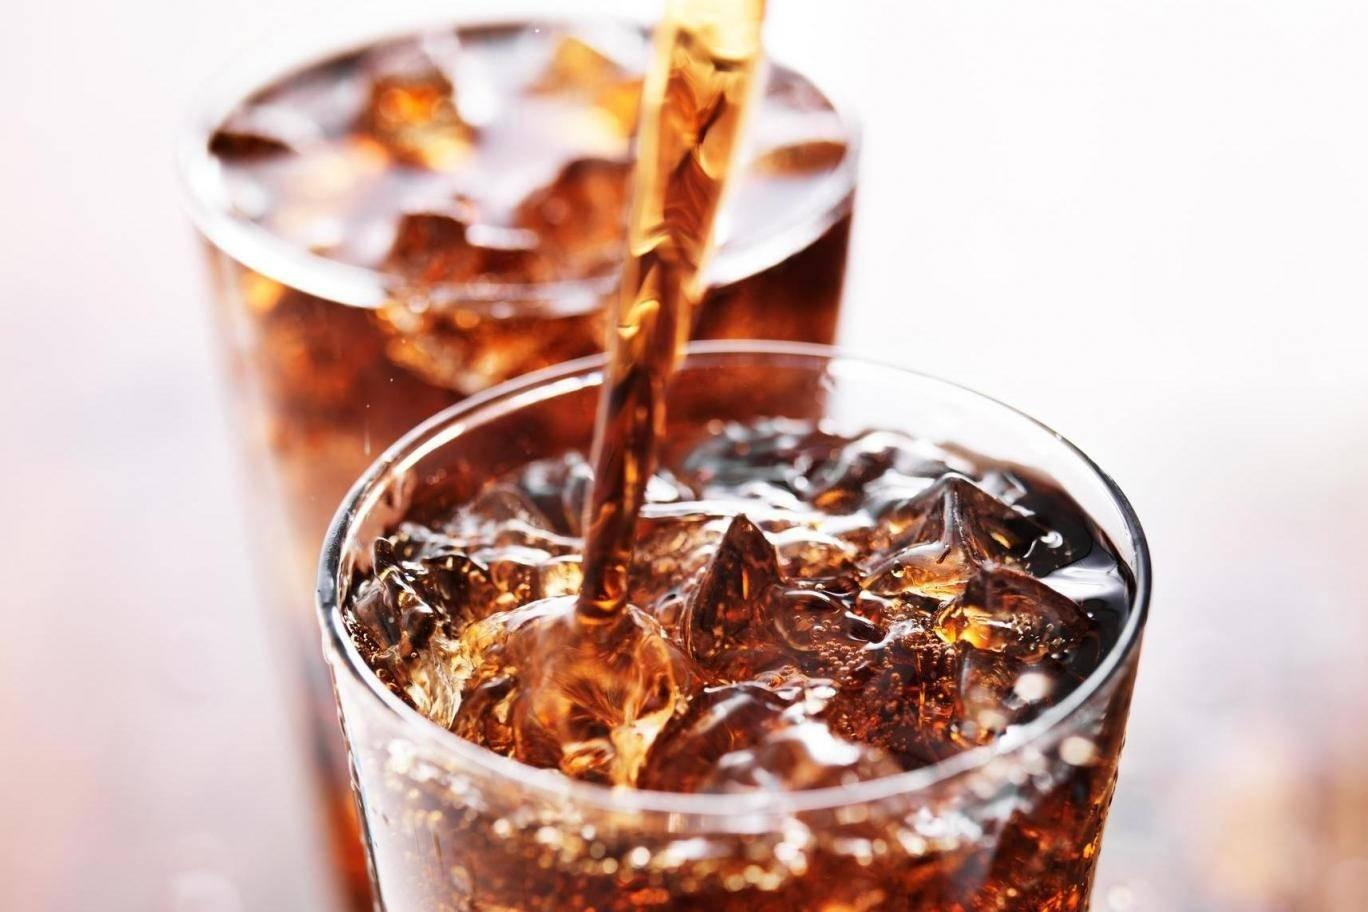 Artificial sweeteners may increase risk of type two diabetes, finds study